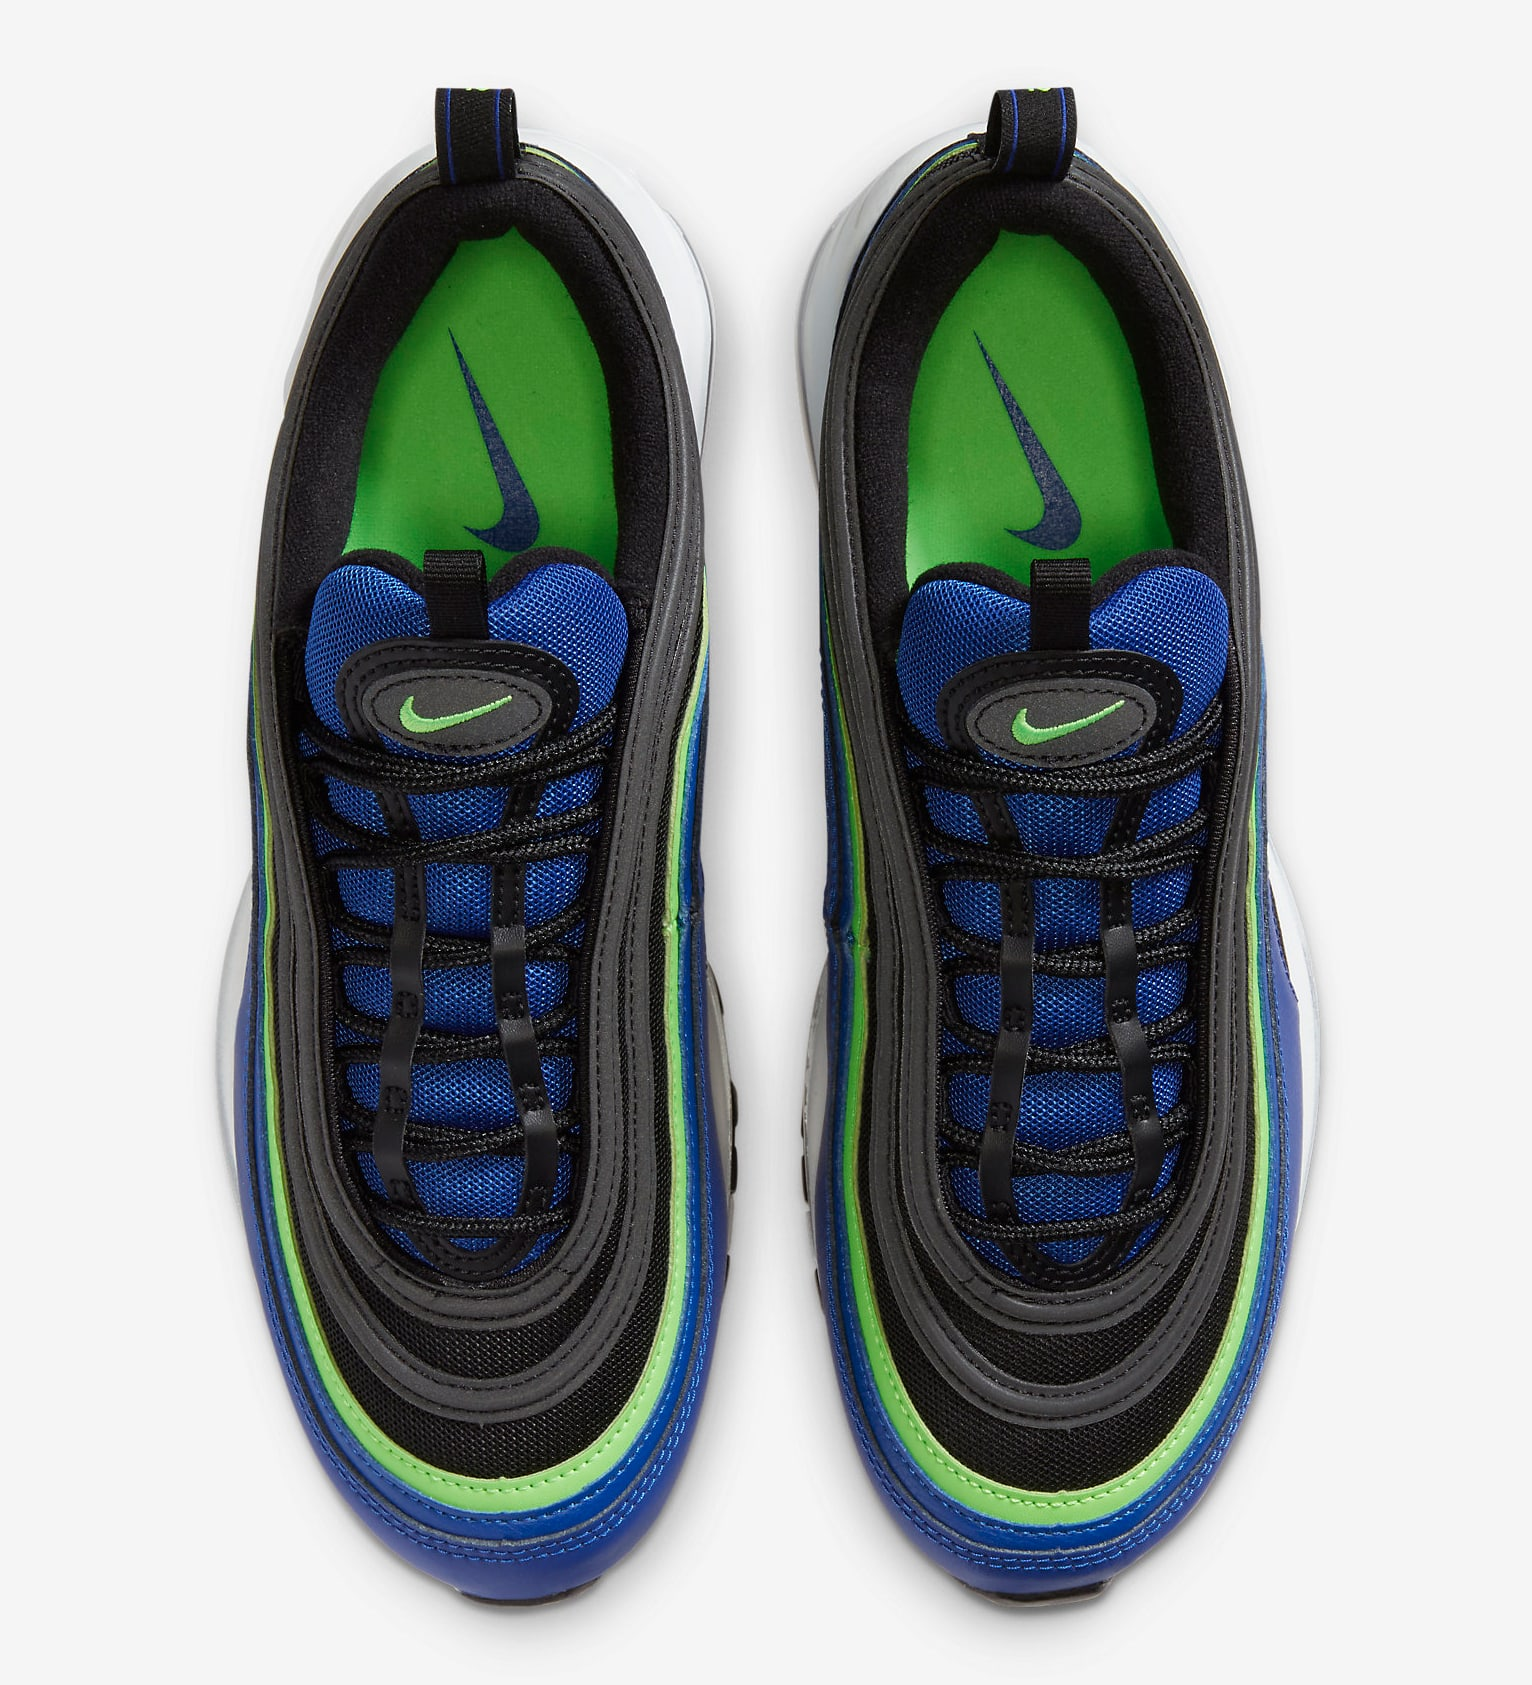 cuello Rizo Lo encontré  Air Max 97 in Neon, Black and Royal is Available Now - HOUSE OF HEAT |  Sneaker News, Release Dates and Features